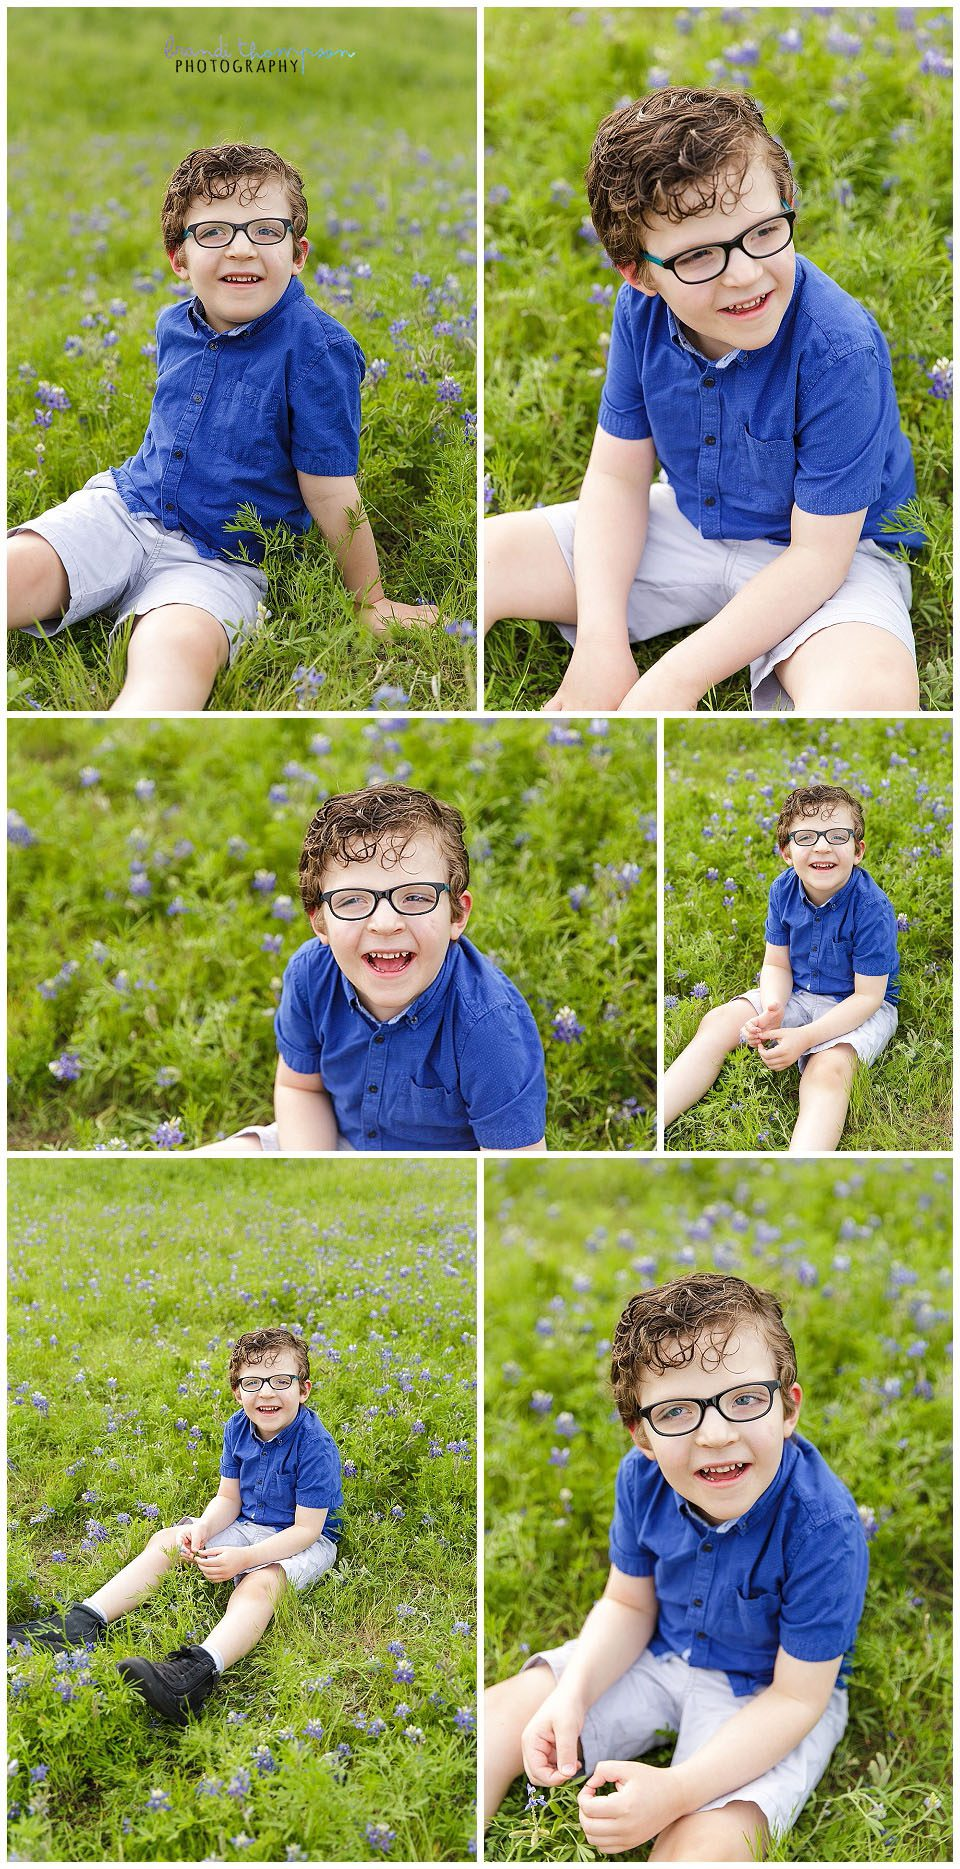 bluebonnet photos in plano texas with children